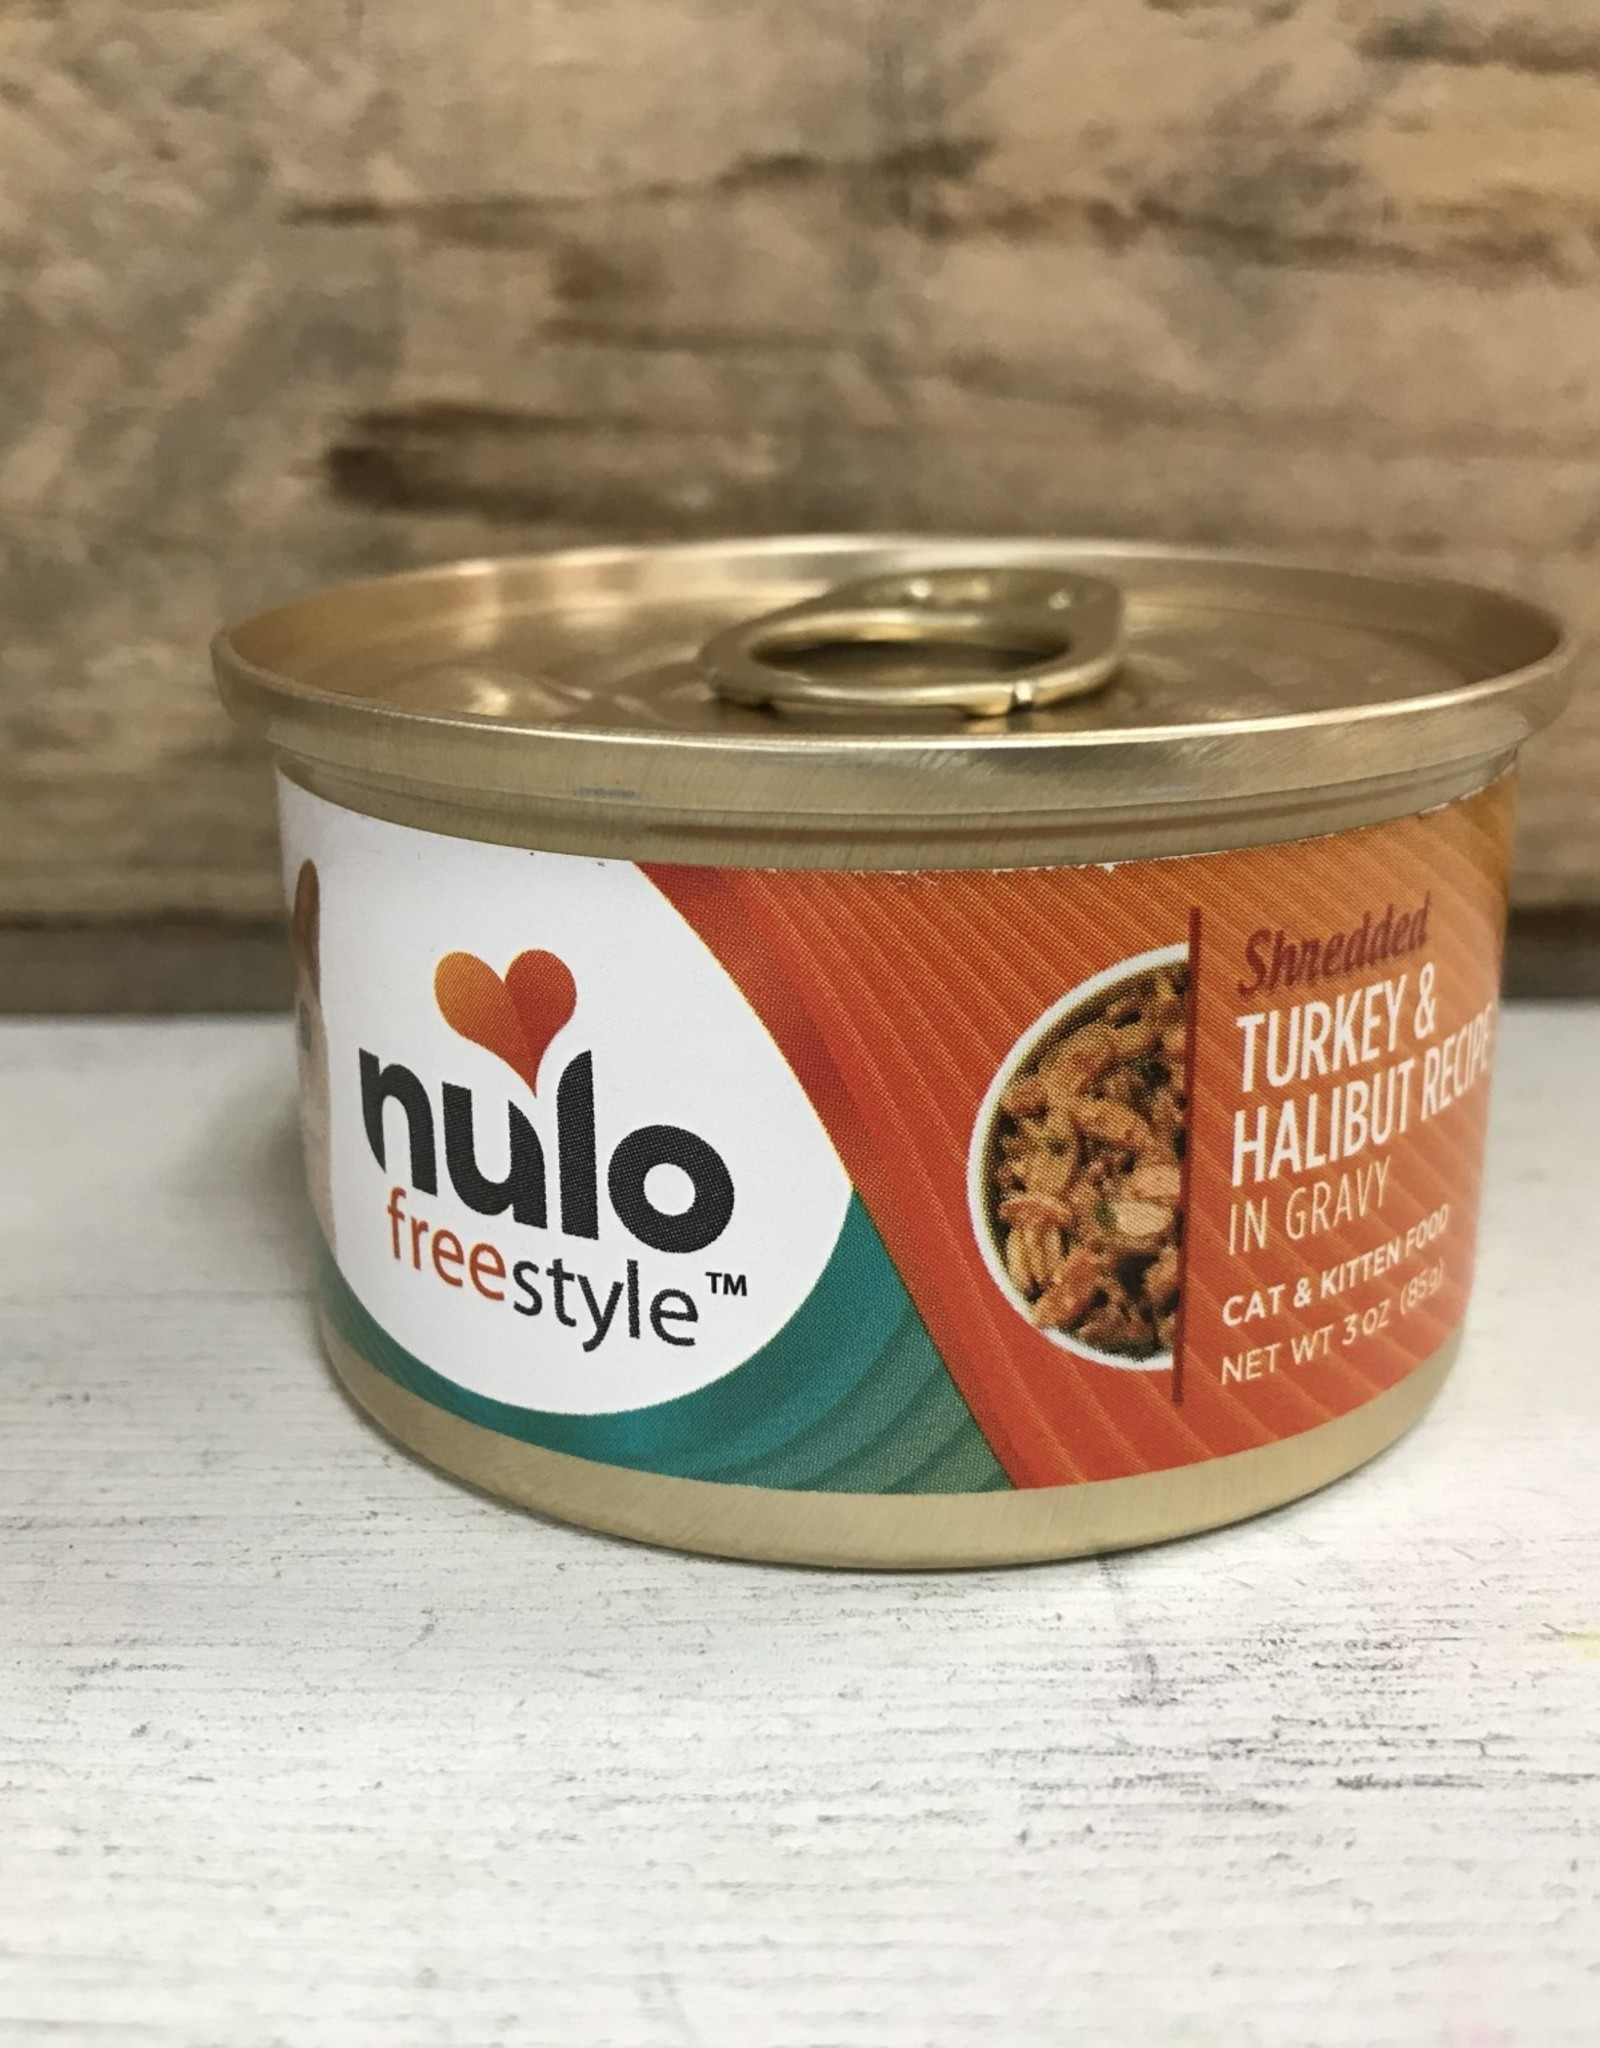 Nulo Nulo FreeStyle 3oz GF Cat Shredded Turkey & Halibut in Gravy can